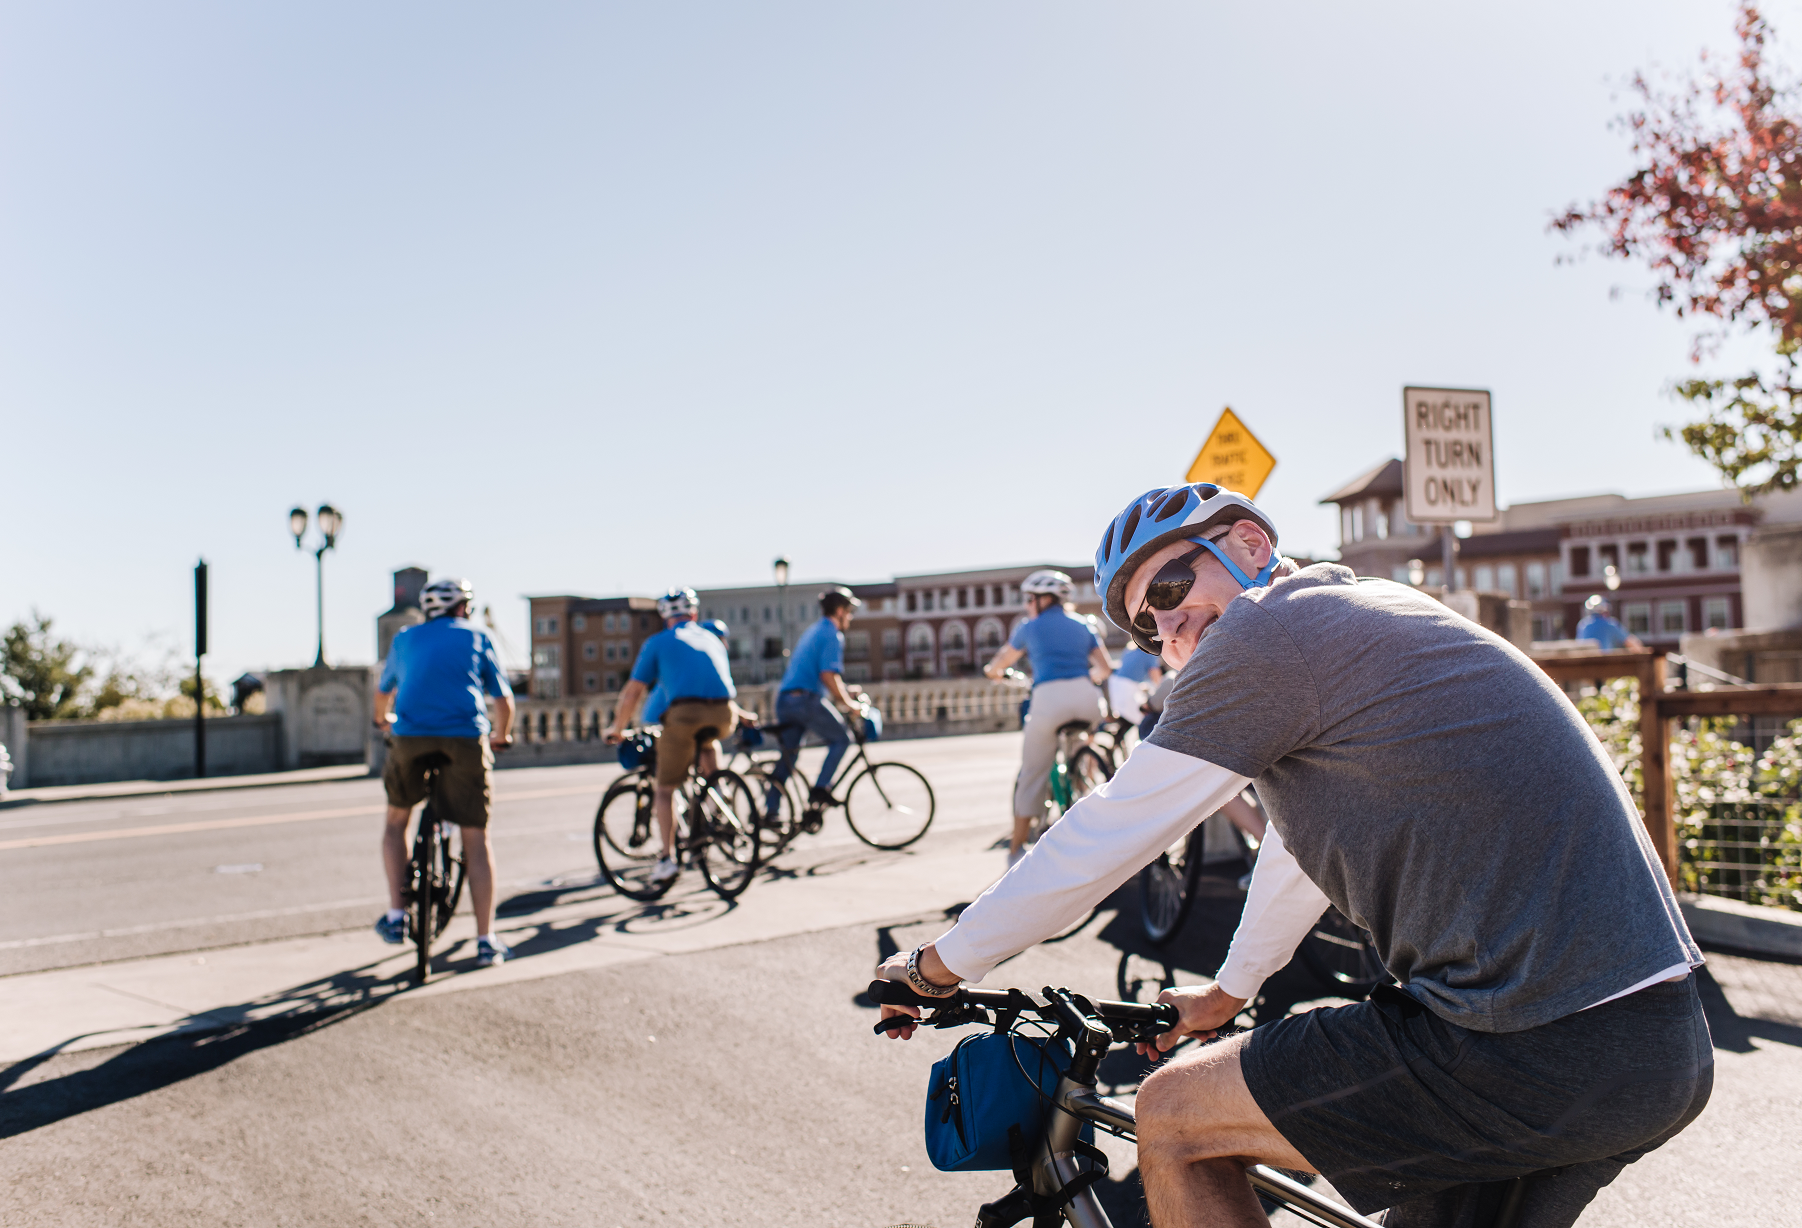 A group of bikers touring through downtown Napa